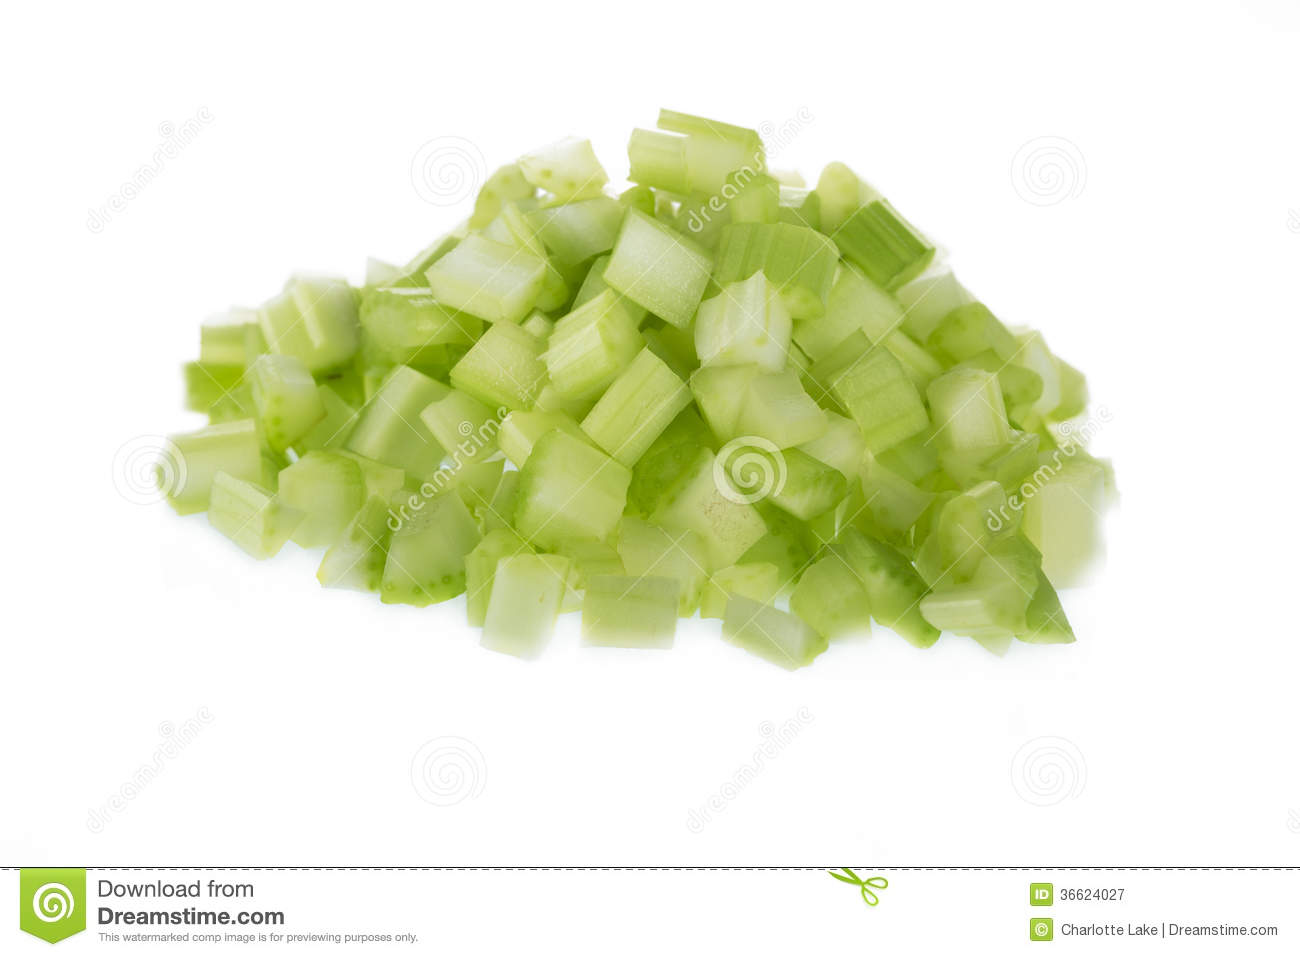 chopped celery - photo #9